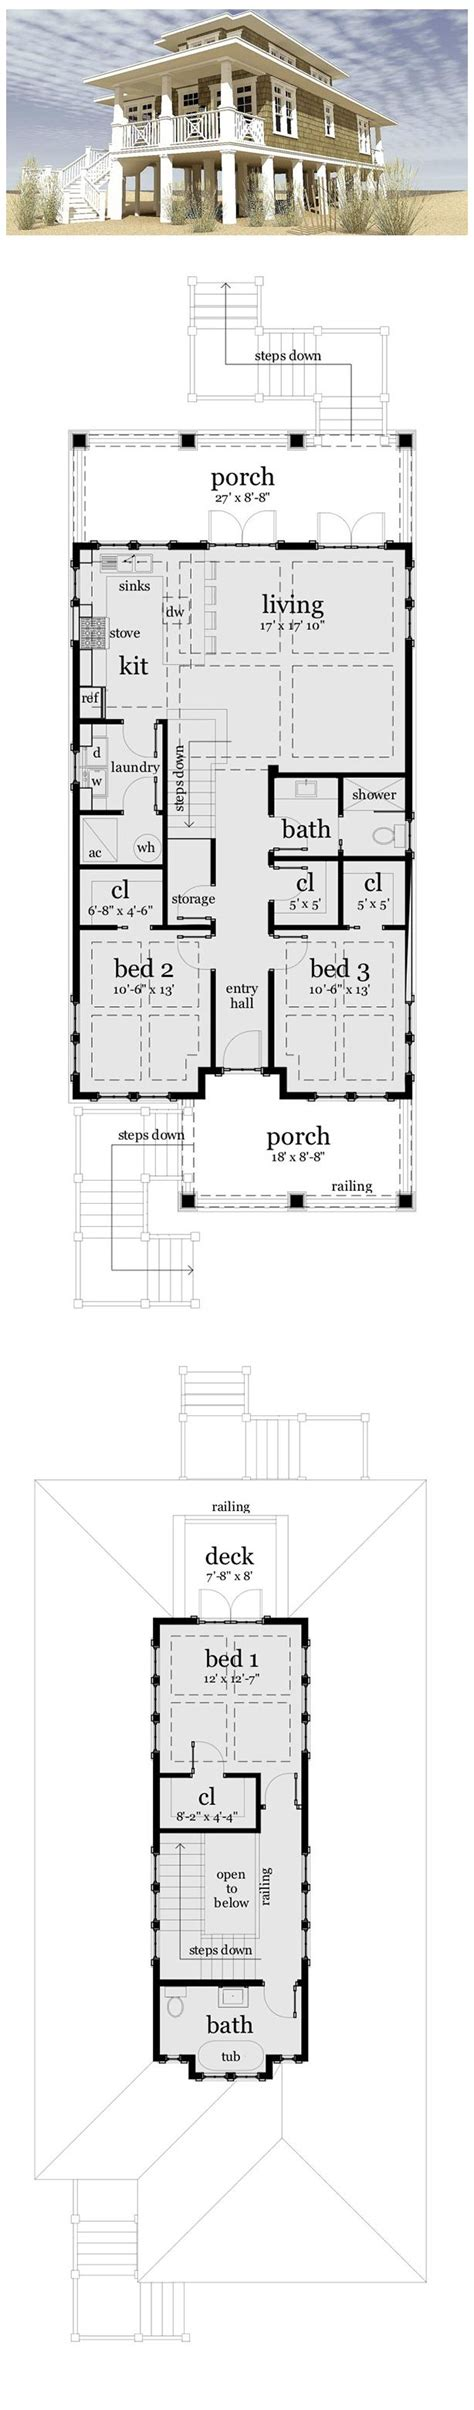 3 bedrooms 2 bathrooms house plan 70806 total living area 1581 sq ft 3